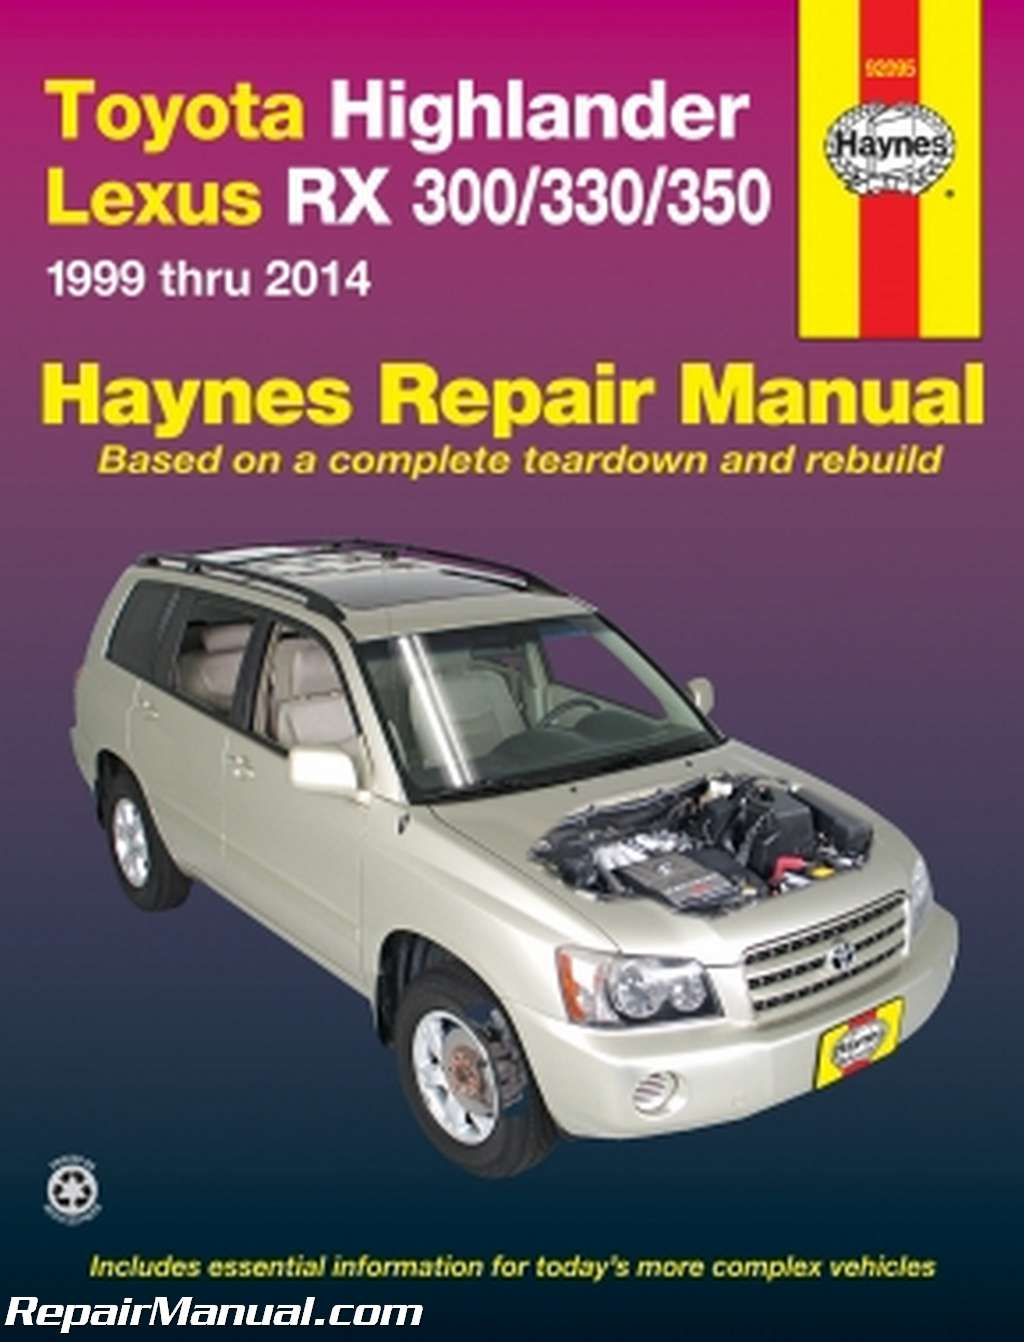 Image in addition H besides Gsic Lexus Rx Rx Ggl Agl Workshop Manual in addition Lexus Ls Ucf Series Pdf Manual X Product Related in addition Lexus Rx Rx Service Repair Manual Update Rx Rm E. on lexus rx 330 repair manual